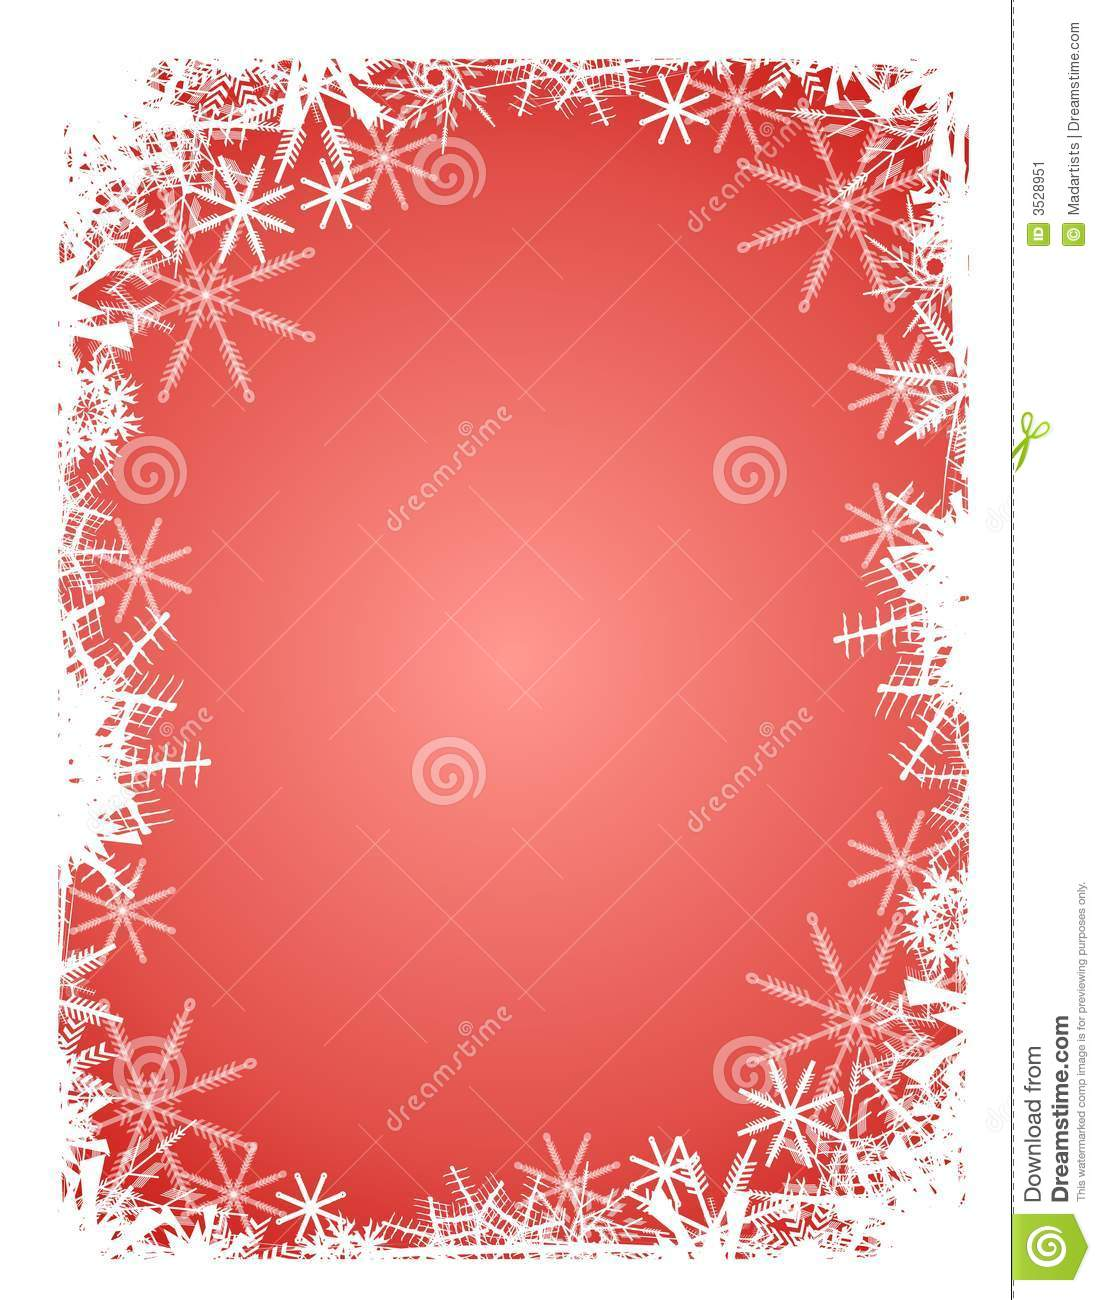 Red White Snowflake Background Stock Image - Image: 3528951